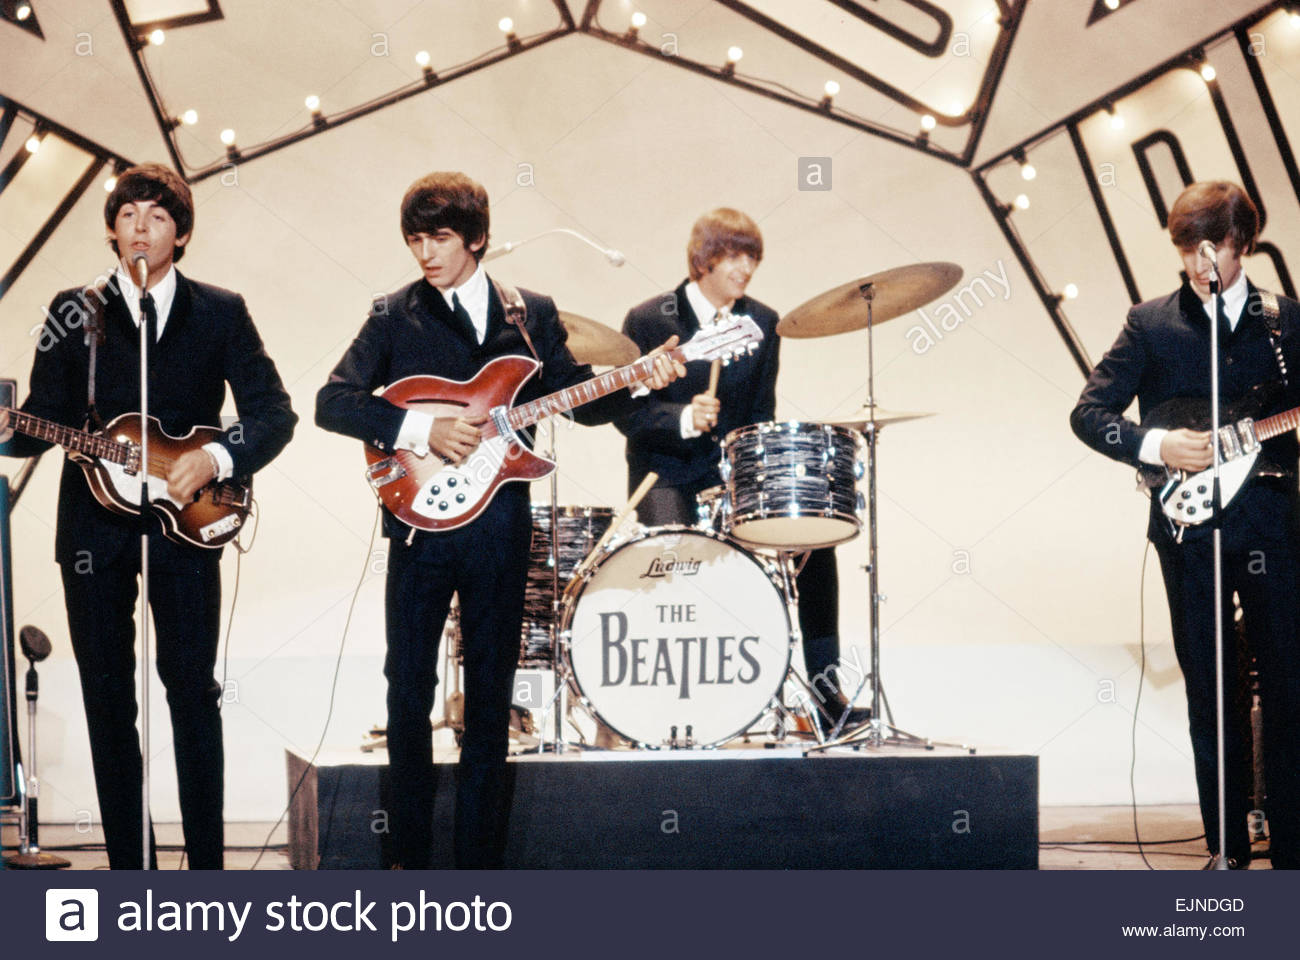 The Beatles Pop Group Performing On Stage At A Television Studio Left To Right Paul McCartney George Harrison Ringo Starr And John Lennon Circa 1964